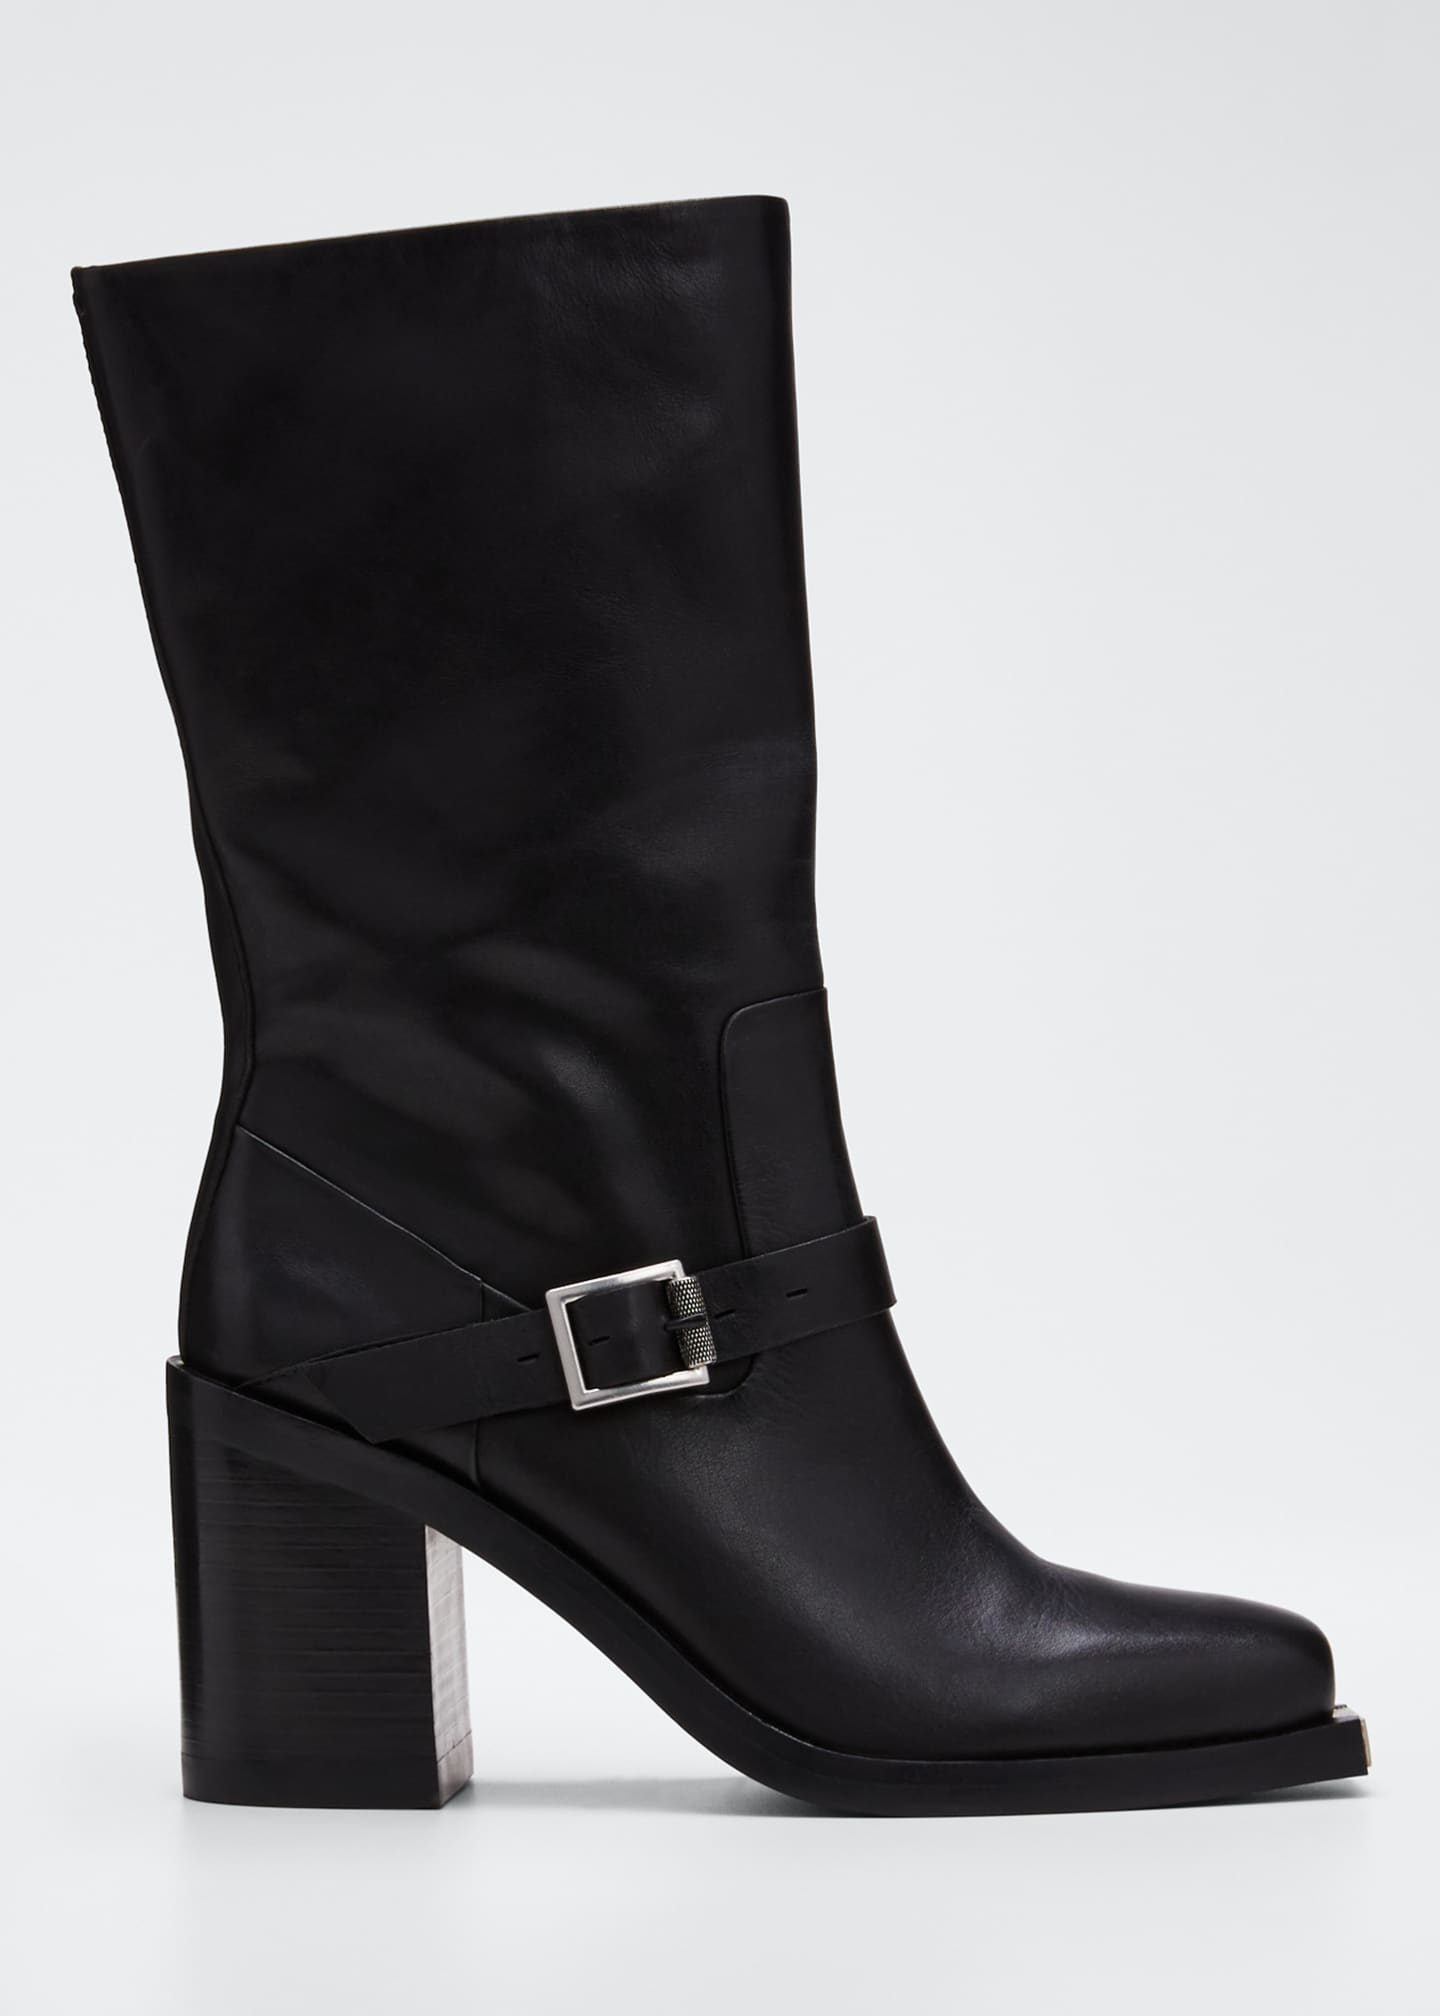 Image 1 of 3: Fallon High Leather Boots